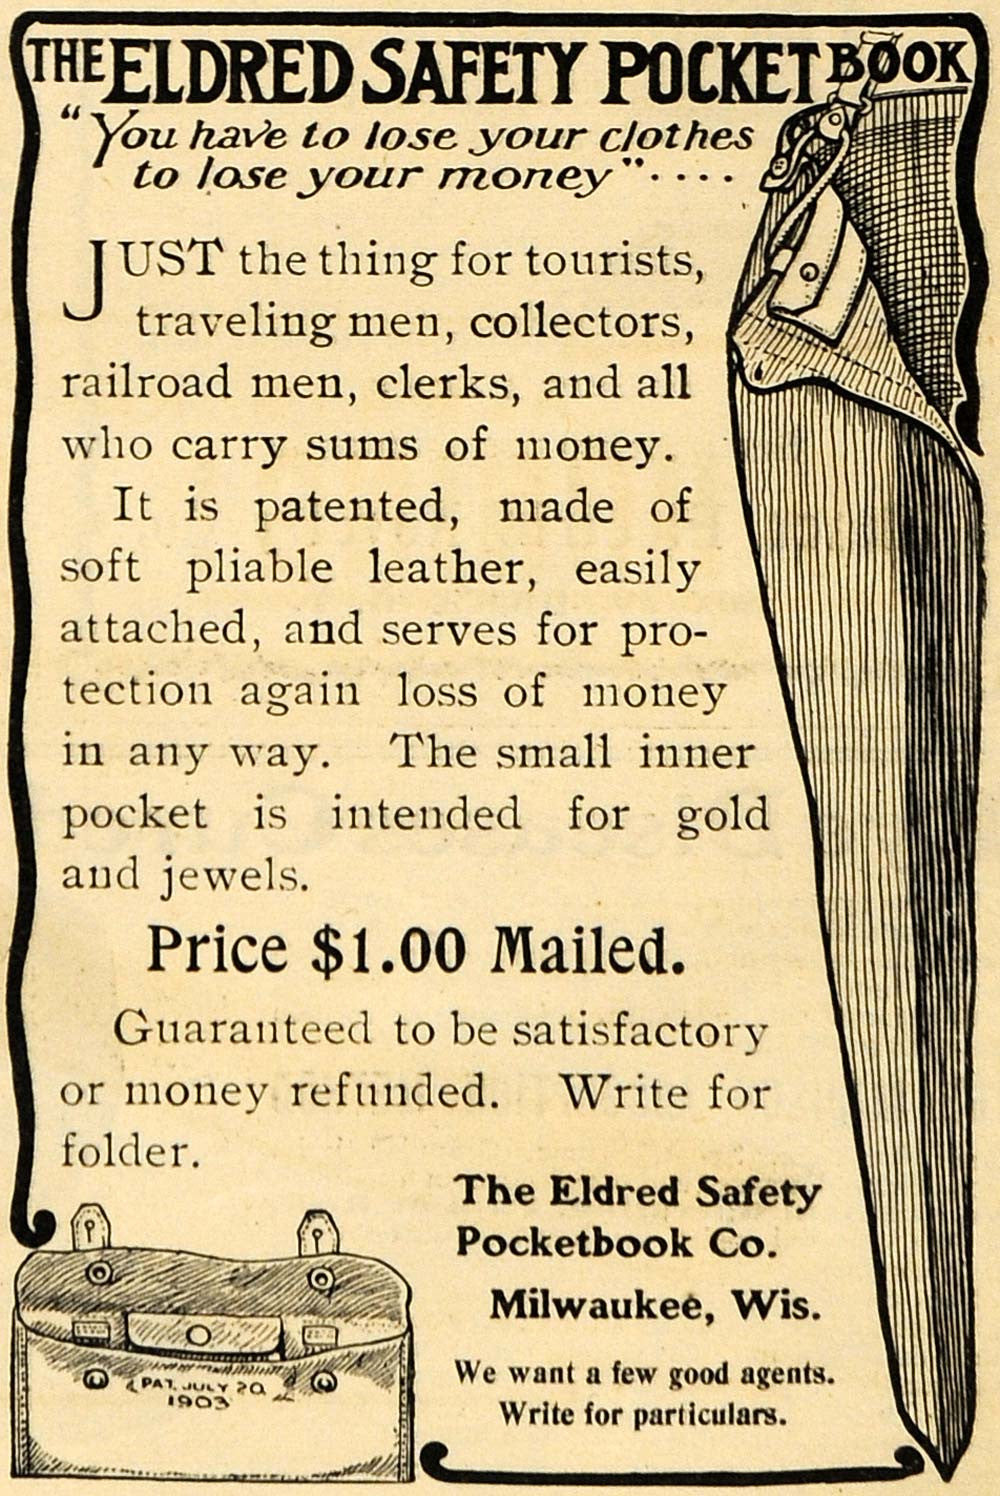 1903 Ad Eldred Safety Pocketbook Inner Cloth Pocket Wallet Security ARG1